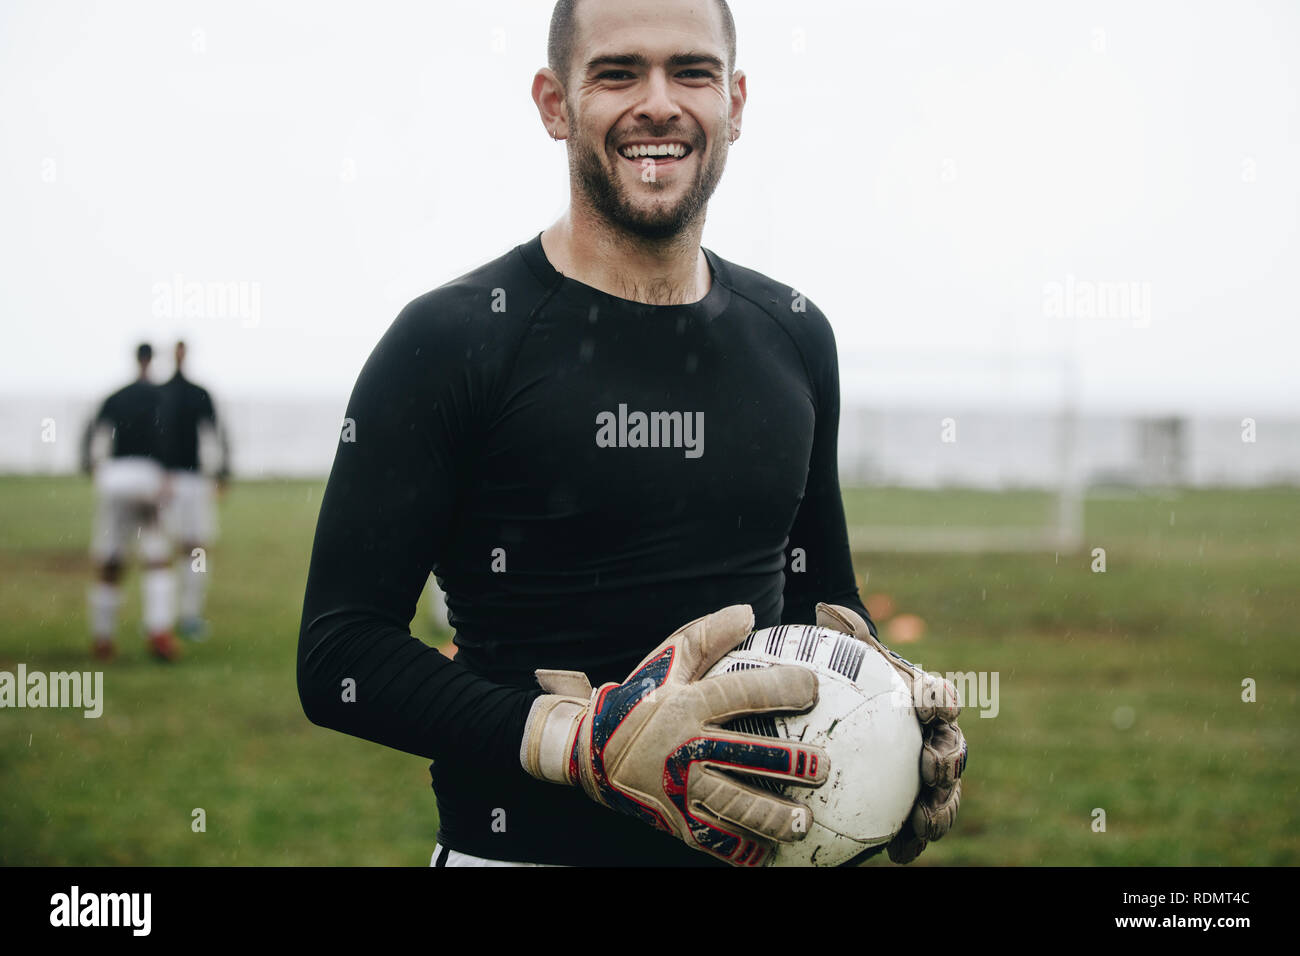 Portrait of a cheerful goalkeeper standing with a soccer ball in hand. Soccer player standing on field holding a football practicing in the morning. - Stock Image